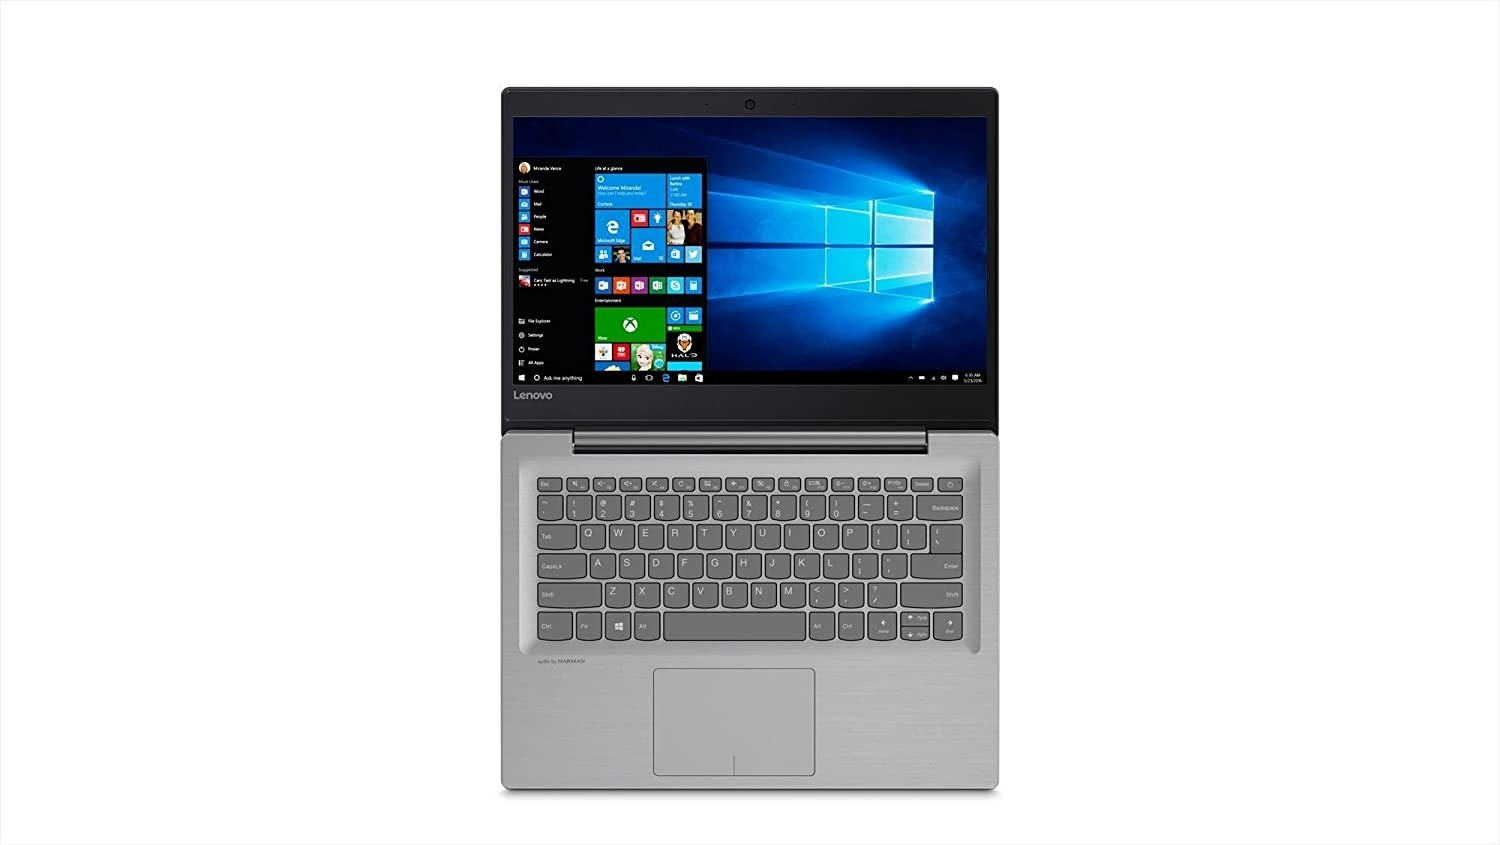 Refurbished laptops & desktops - Lenovo IdeaPad 520S-14IKB 80X200EPIN 14-inch Laptop (7TH Gen Core i5-7200U/8GB/1TB+128GB SSD/Windows 10/Integrated Graphics), Mineral Grey